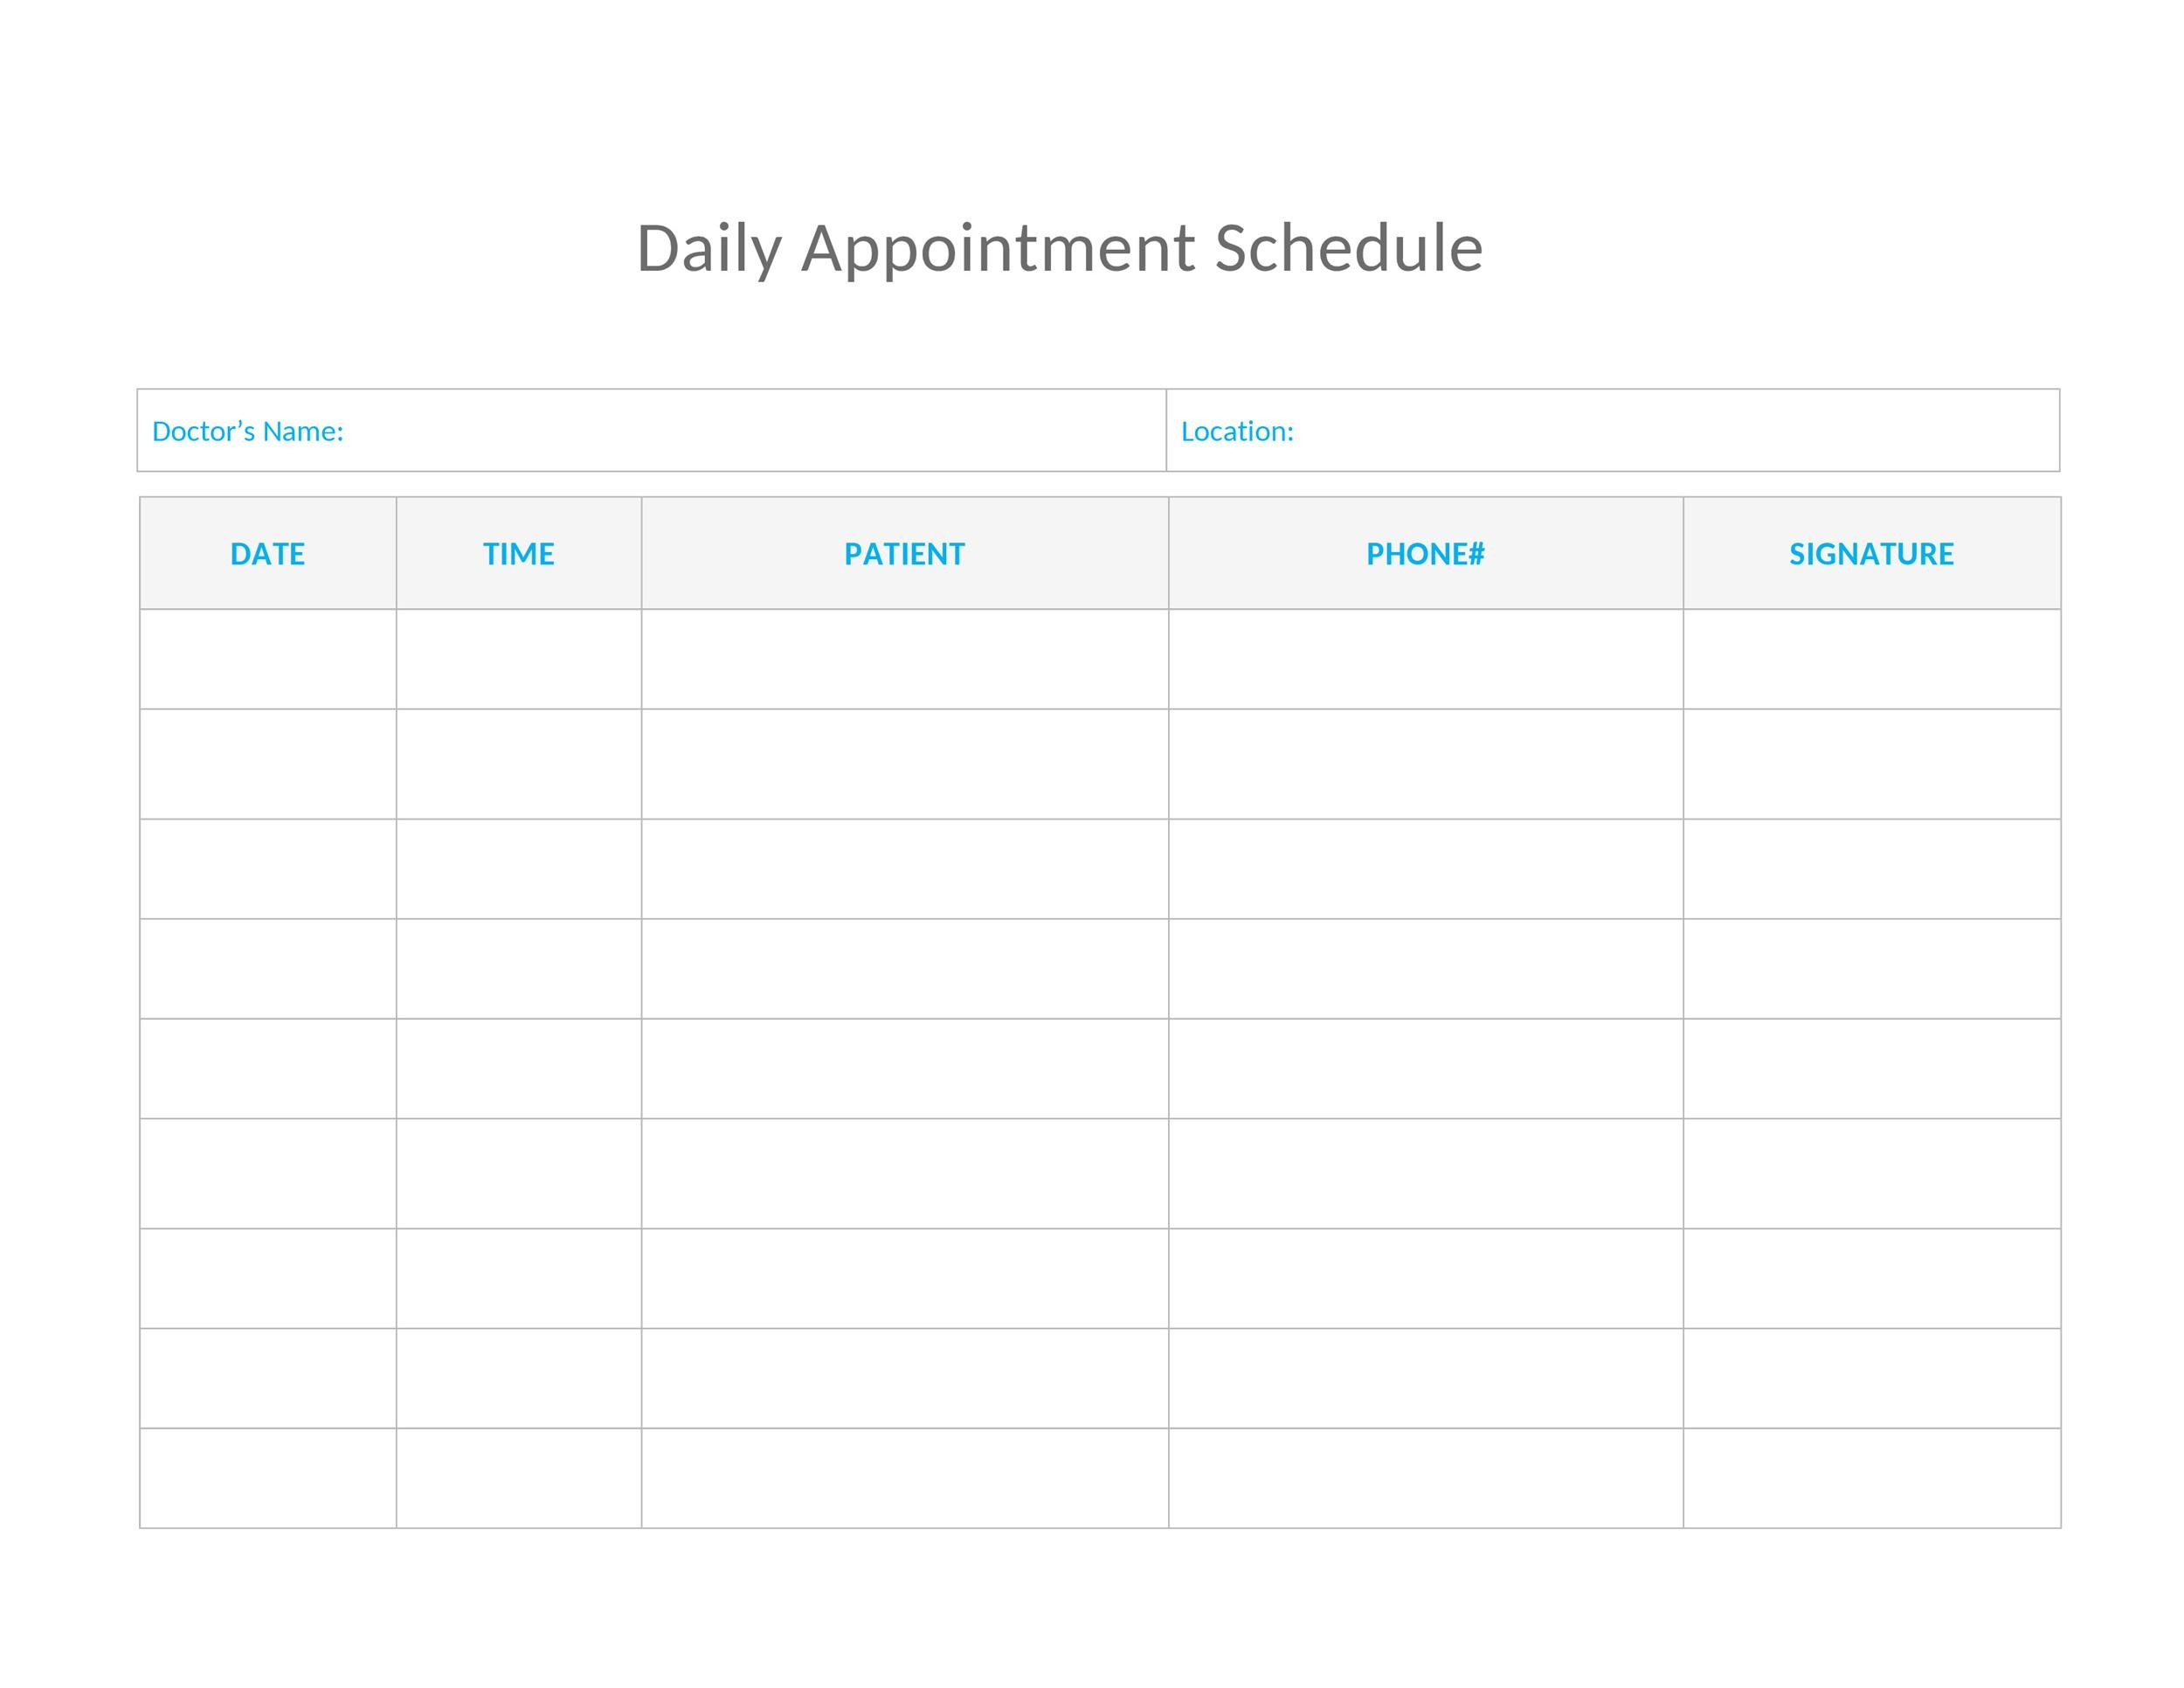 image about Printable Appointment Sheets named 45 Printable Appointment Program Templates [ Appointment